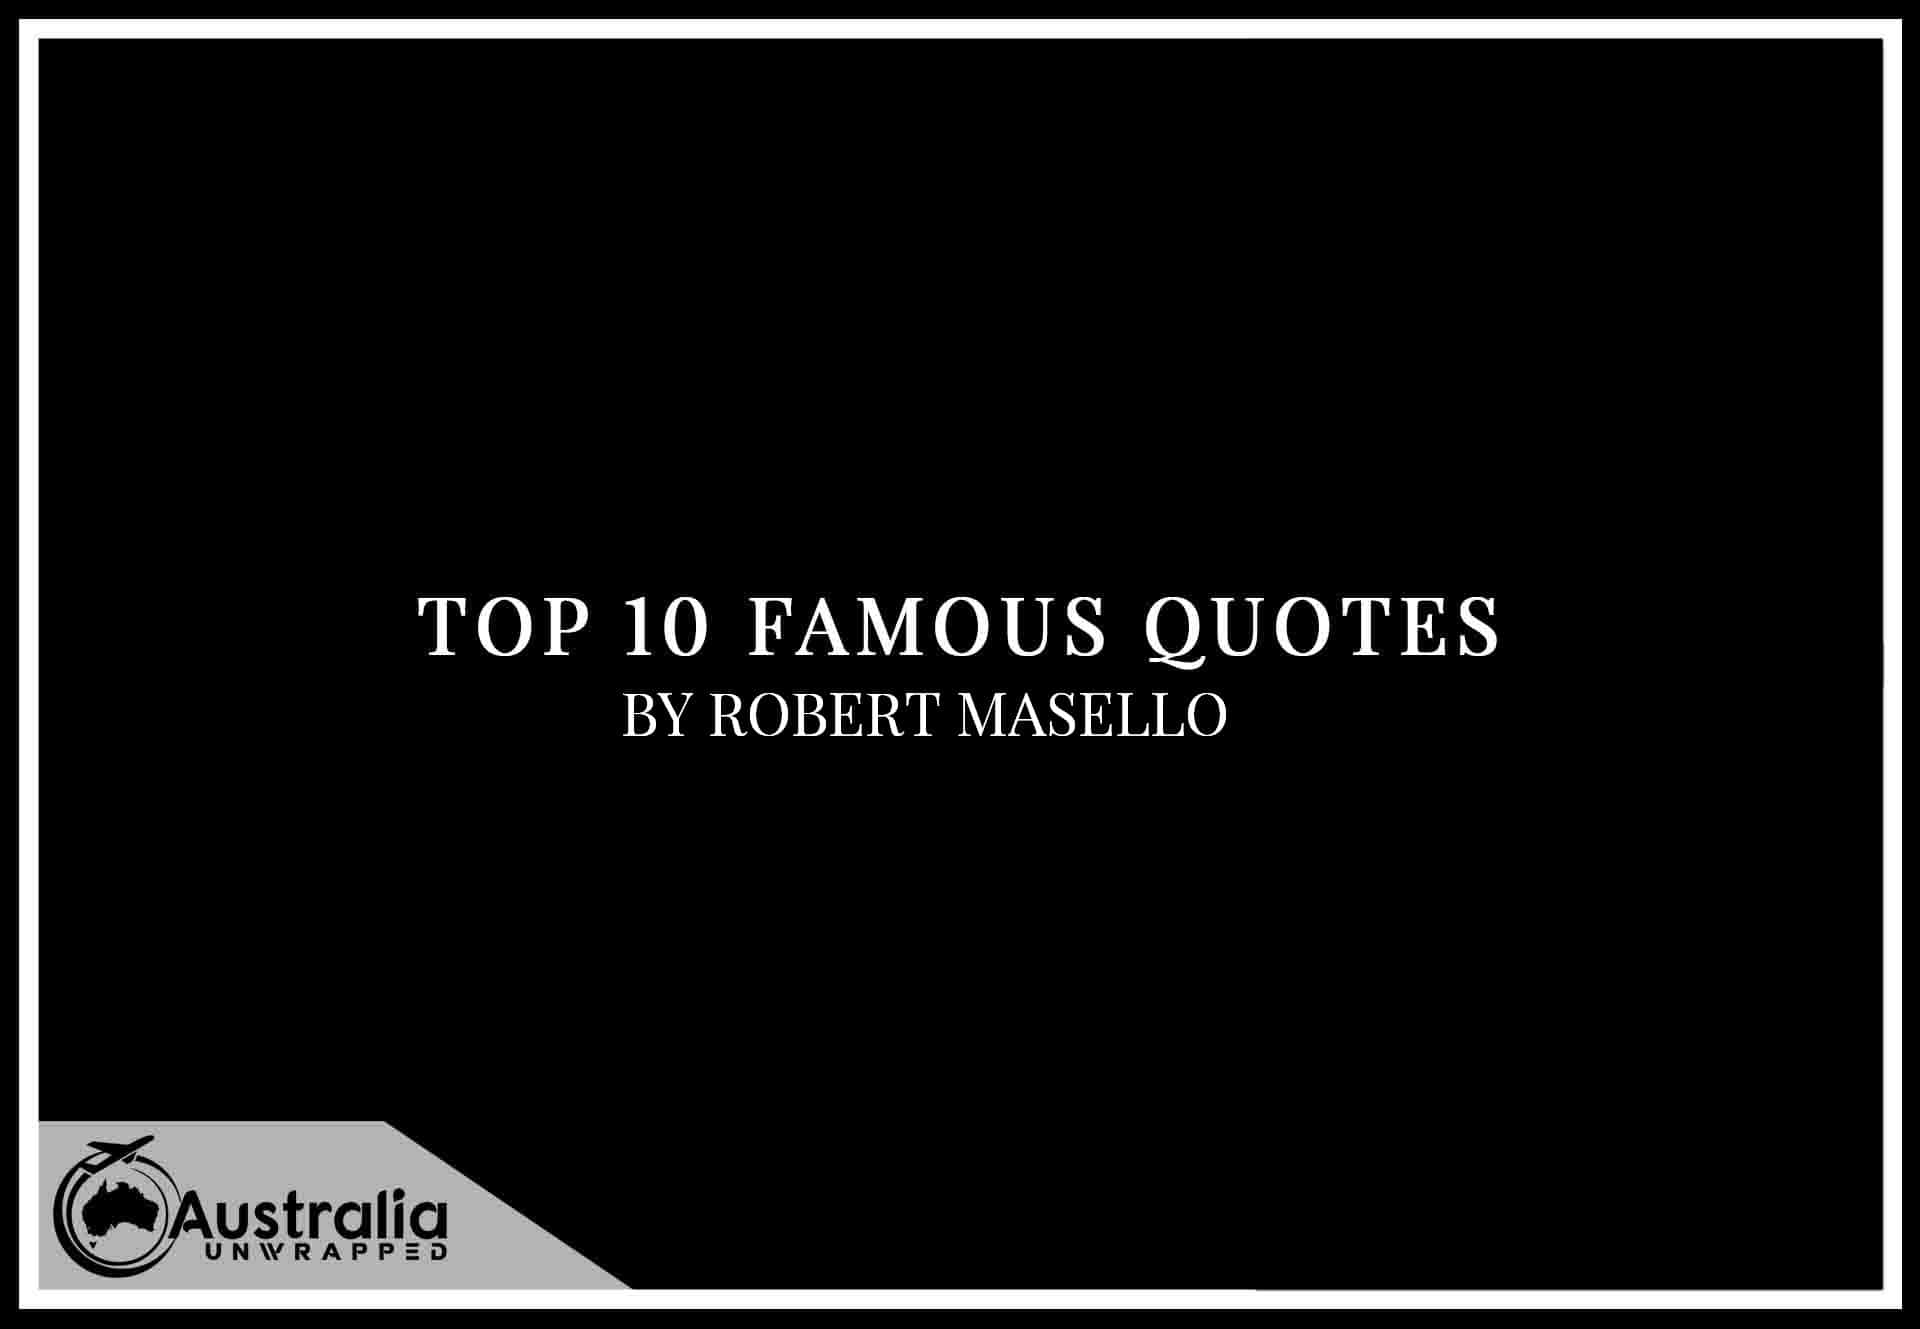 Top 10 Famous Quotes by Author Robert Masello